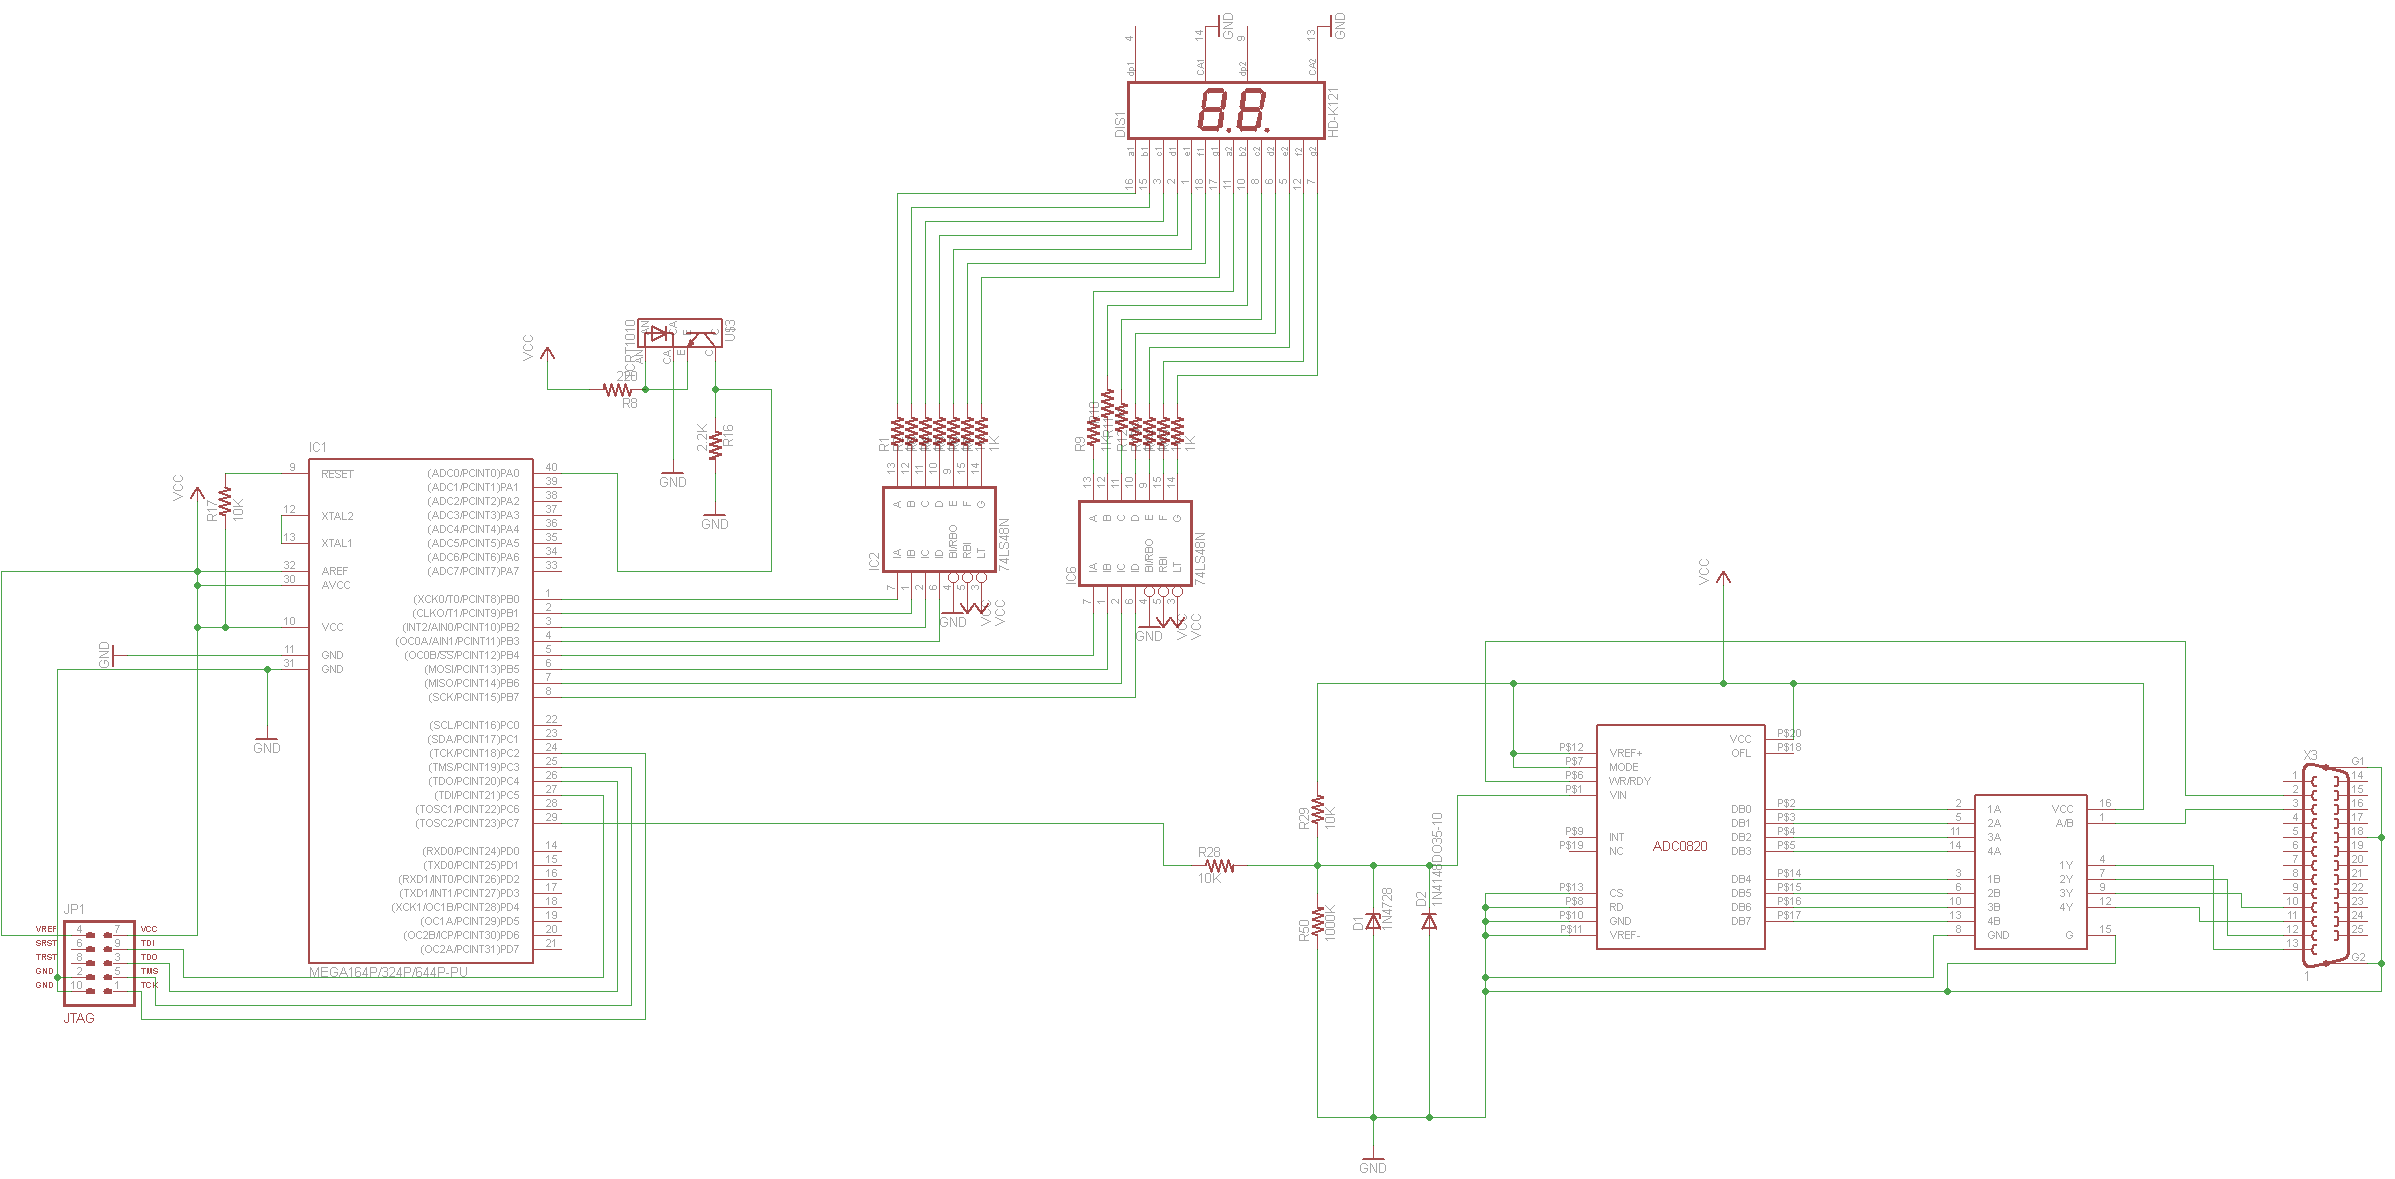 Reverse Phase Control Dimmer Based On Cool Mosfet